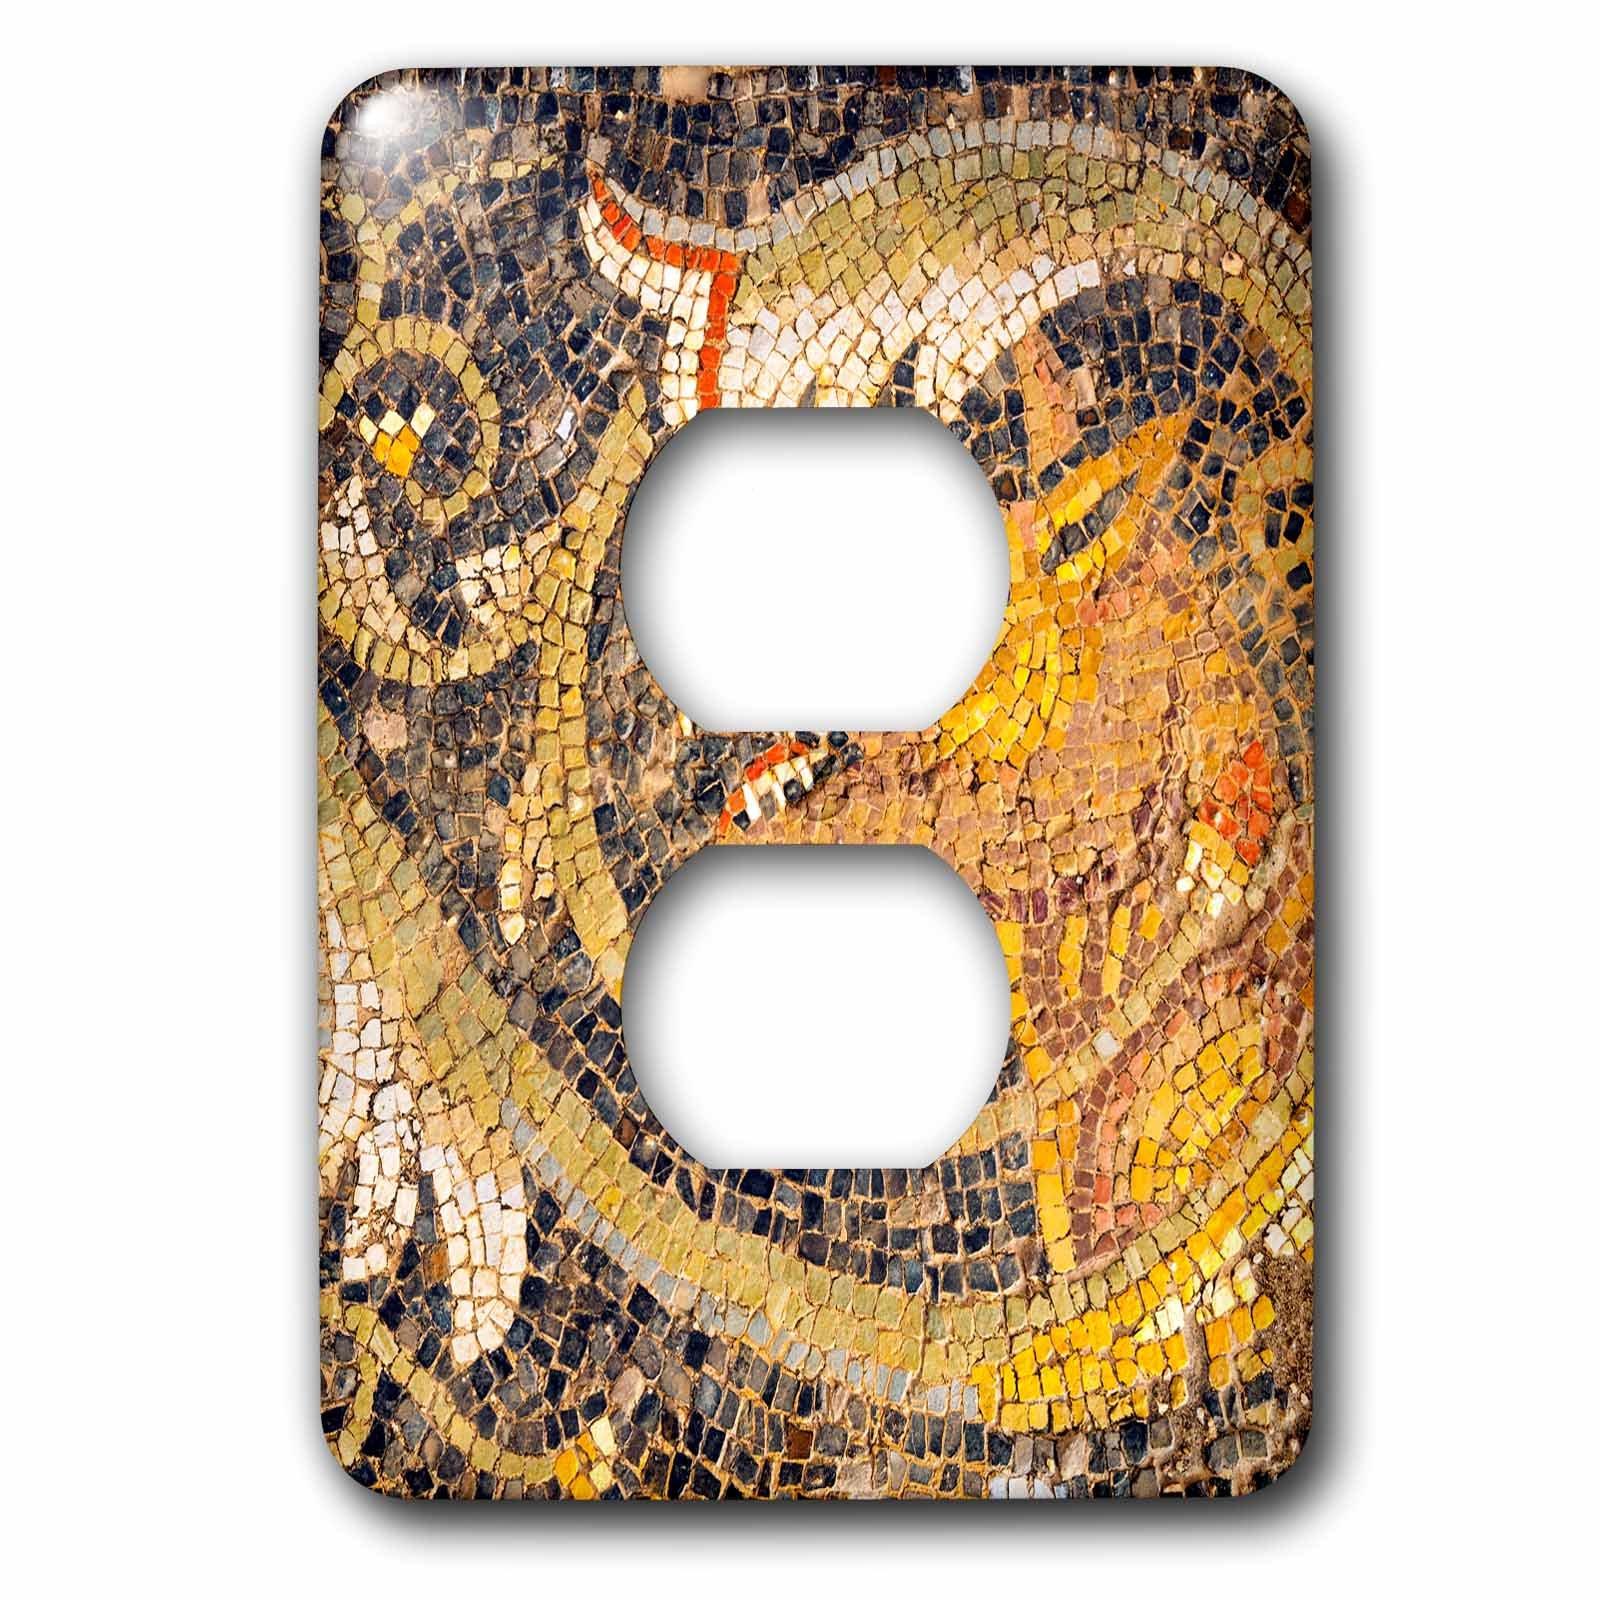 3dRose Danita Delimont - Artwork - Wolf Mosaic, New House Of Hunt, Bulla Regia, Tunisia, North Africa - Light Switch Covers - 2 plug outlet cover (lsp_276613_6)